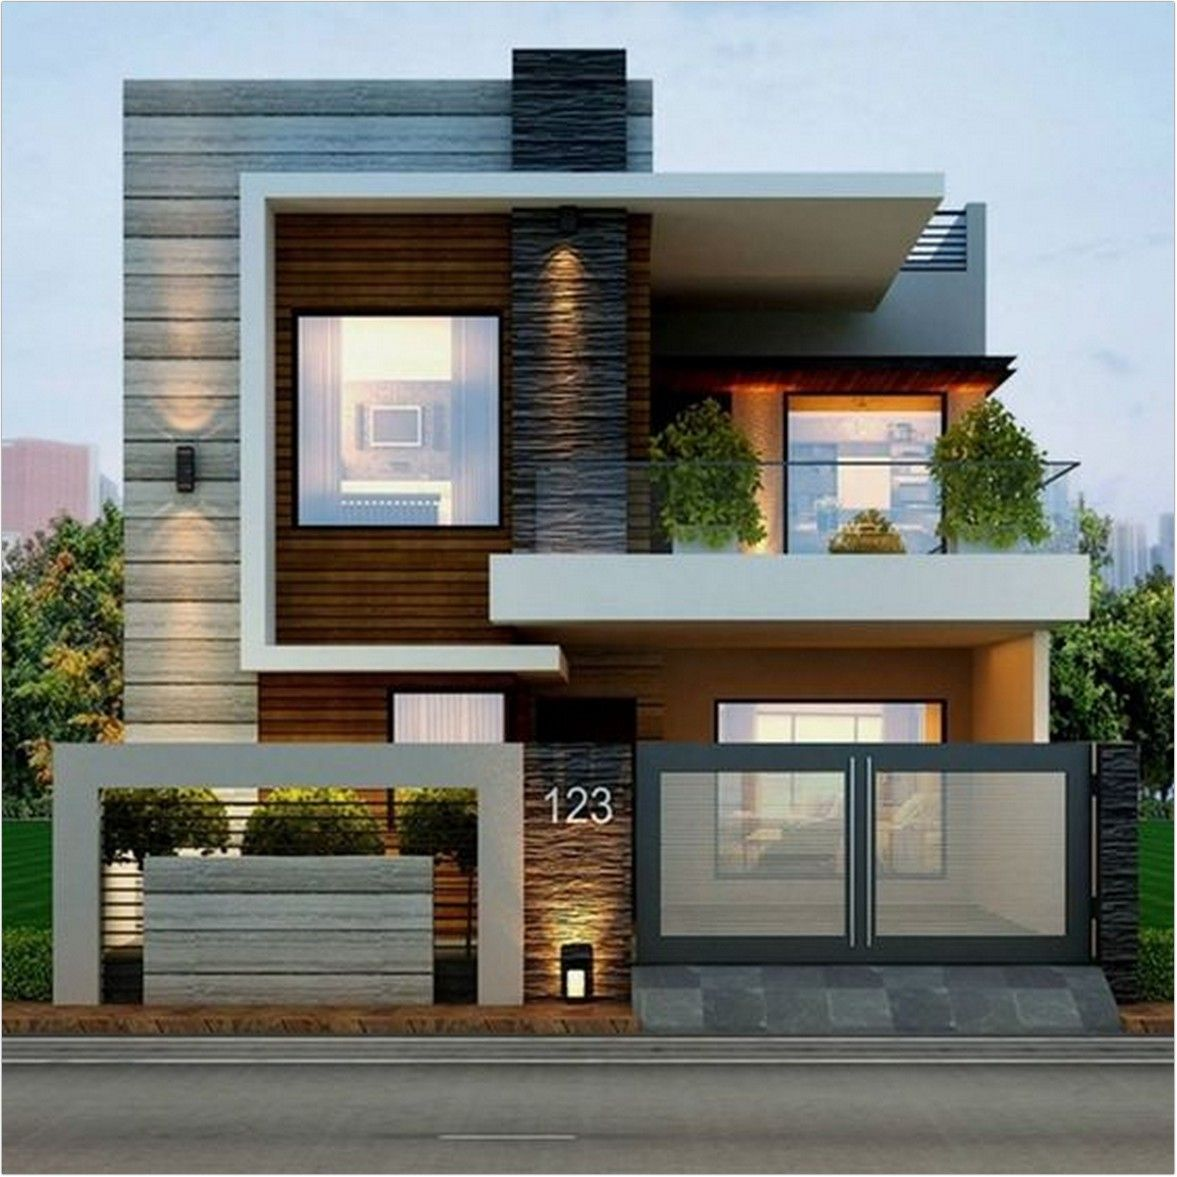 25 Special Edition Modern House Design For Your 2020 Architectural Inspiration 2 Dreamsscape Moderne Architectuur Woning House Architectuur Huis